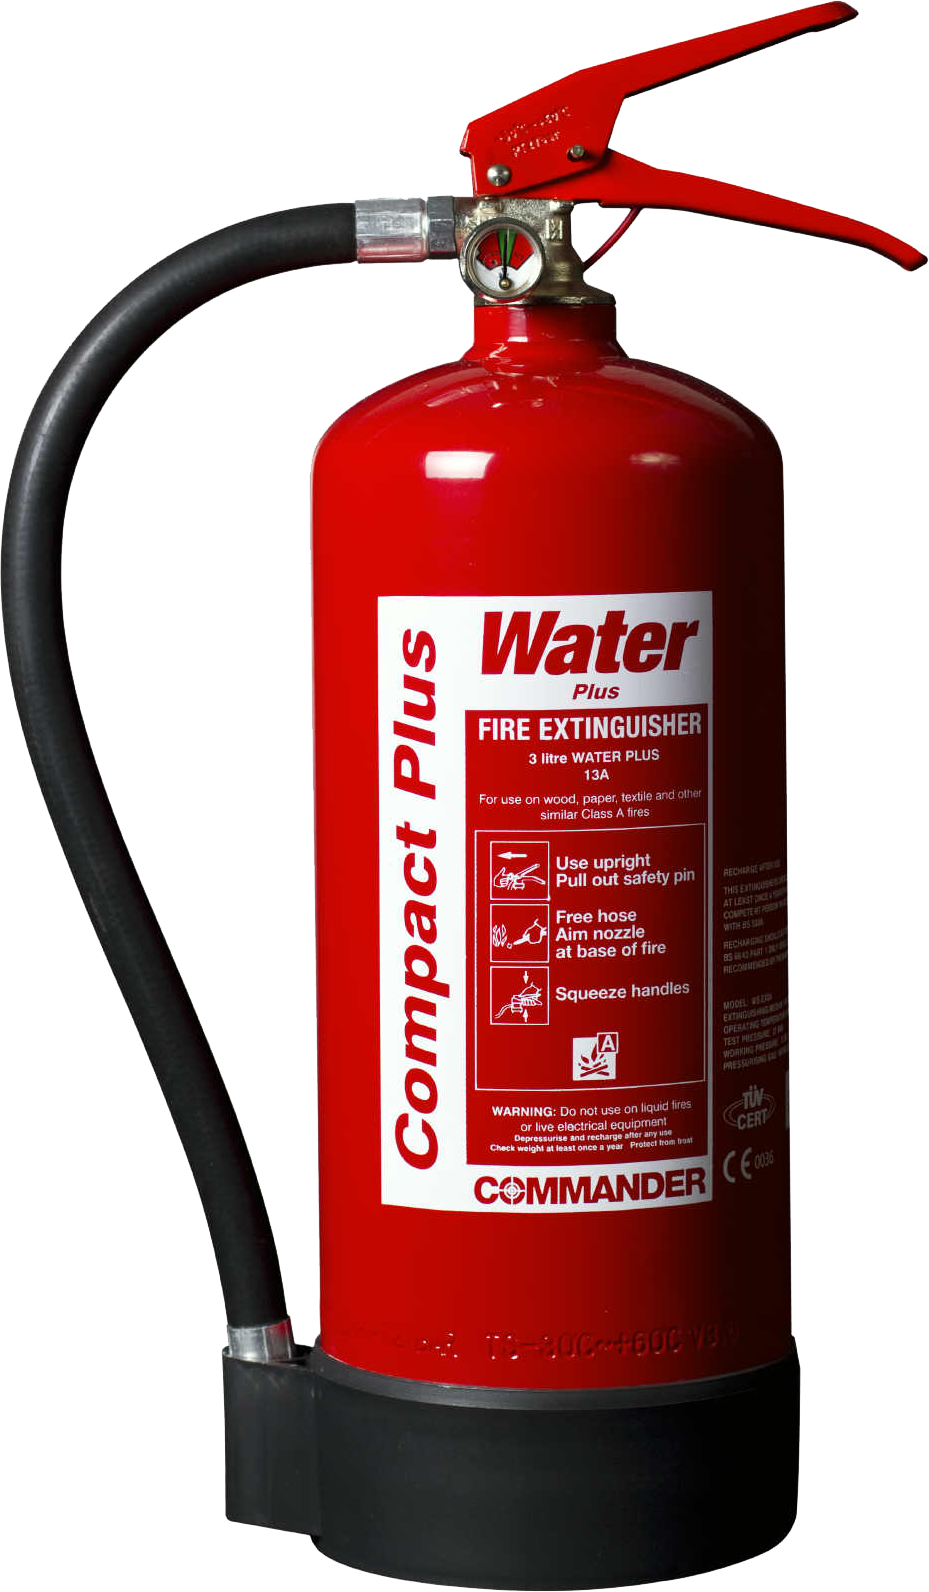 Fire clipart kitchen fire. Extinguisher png images free